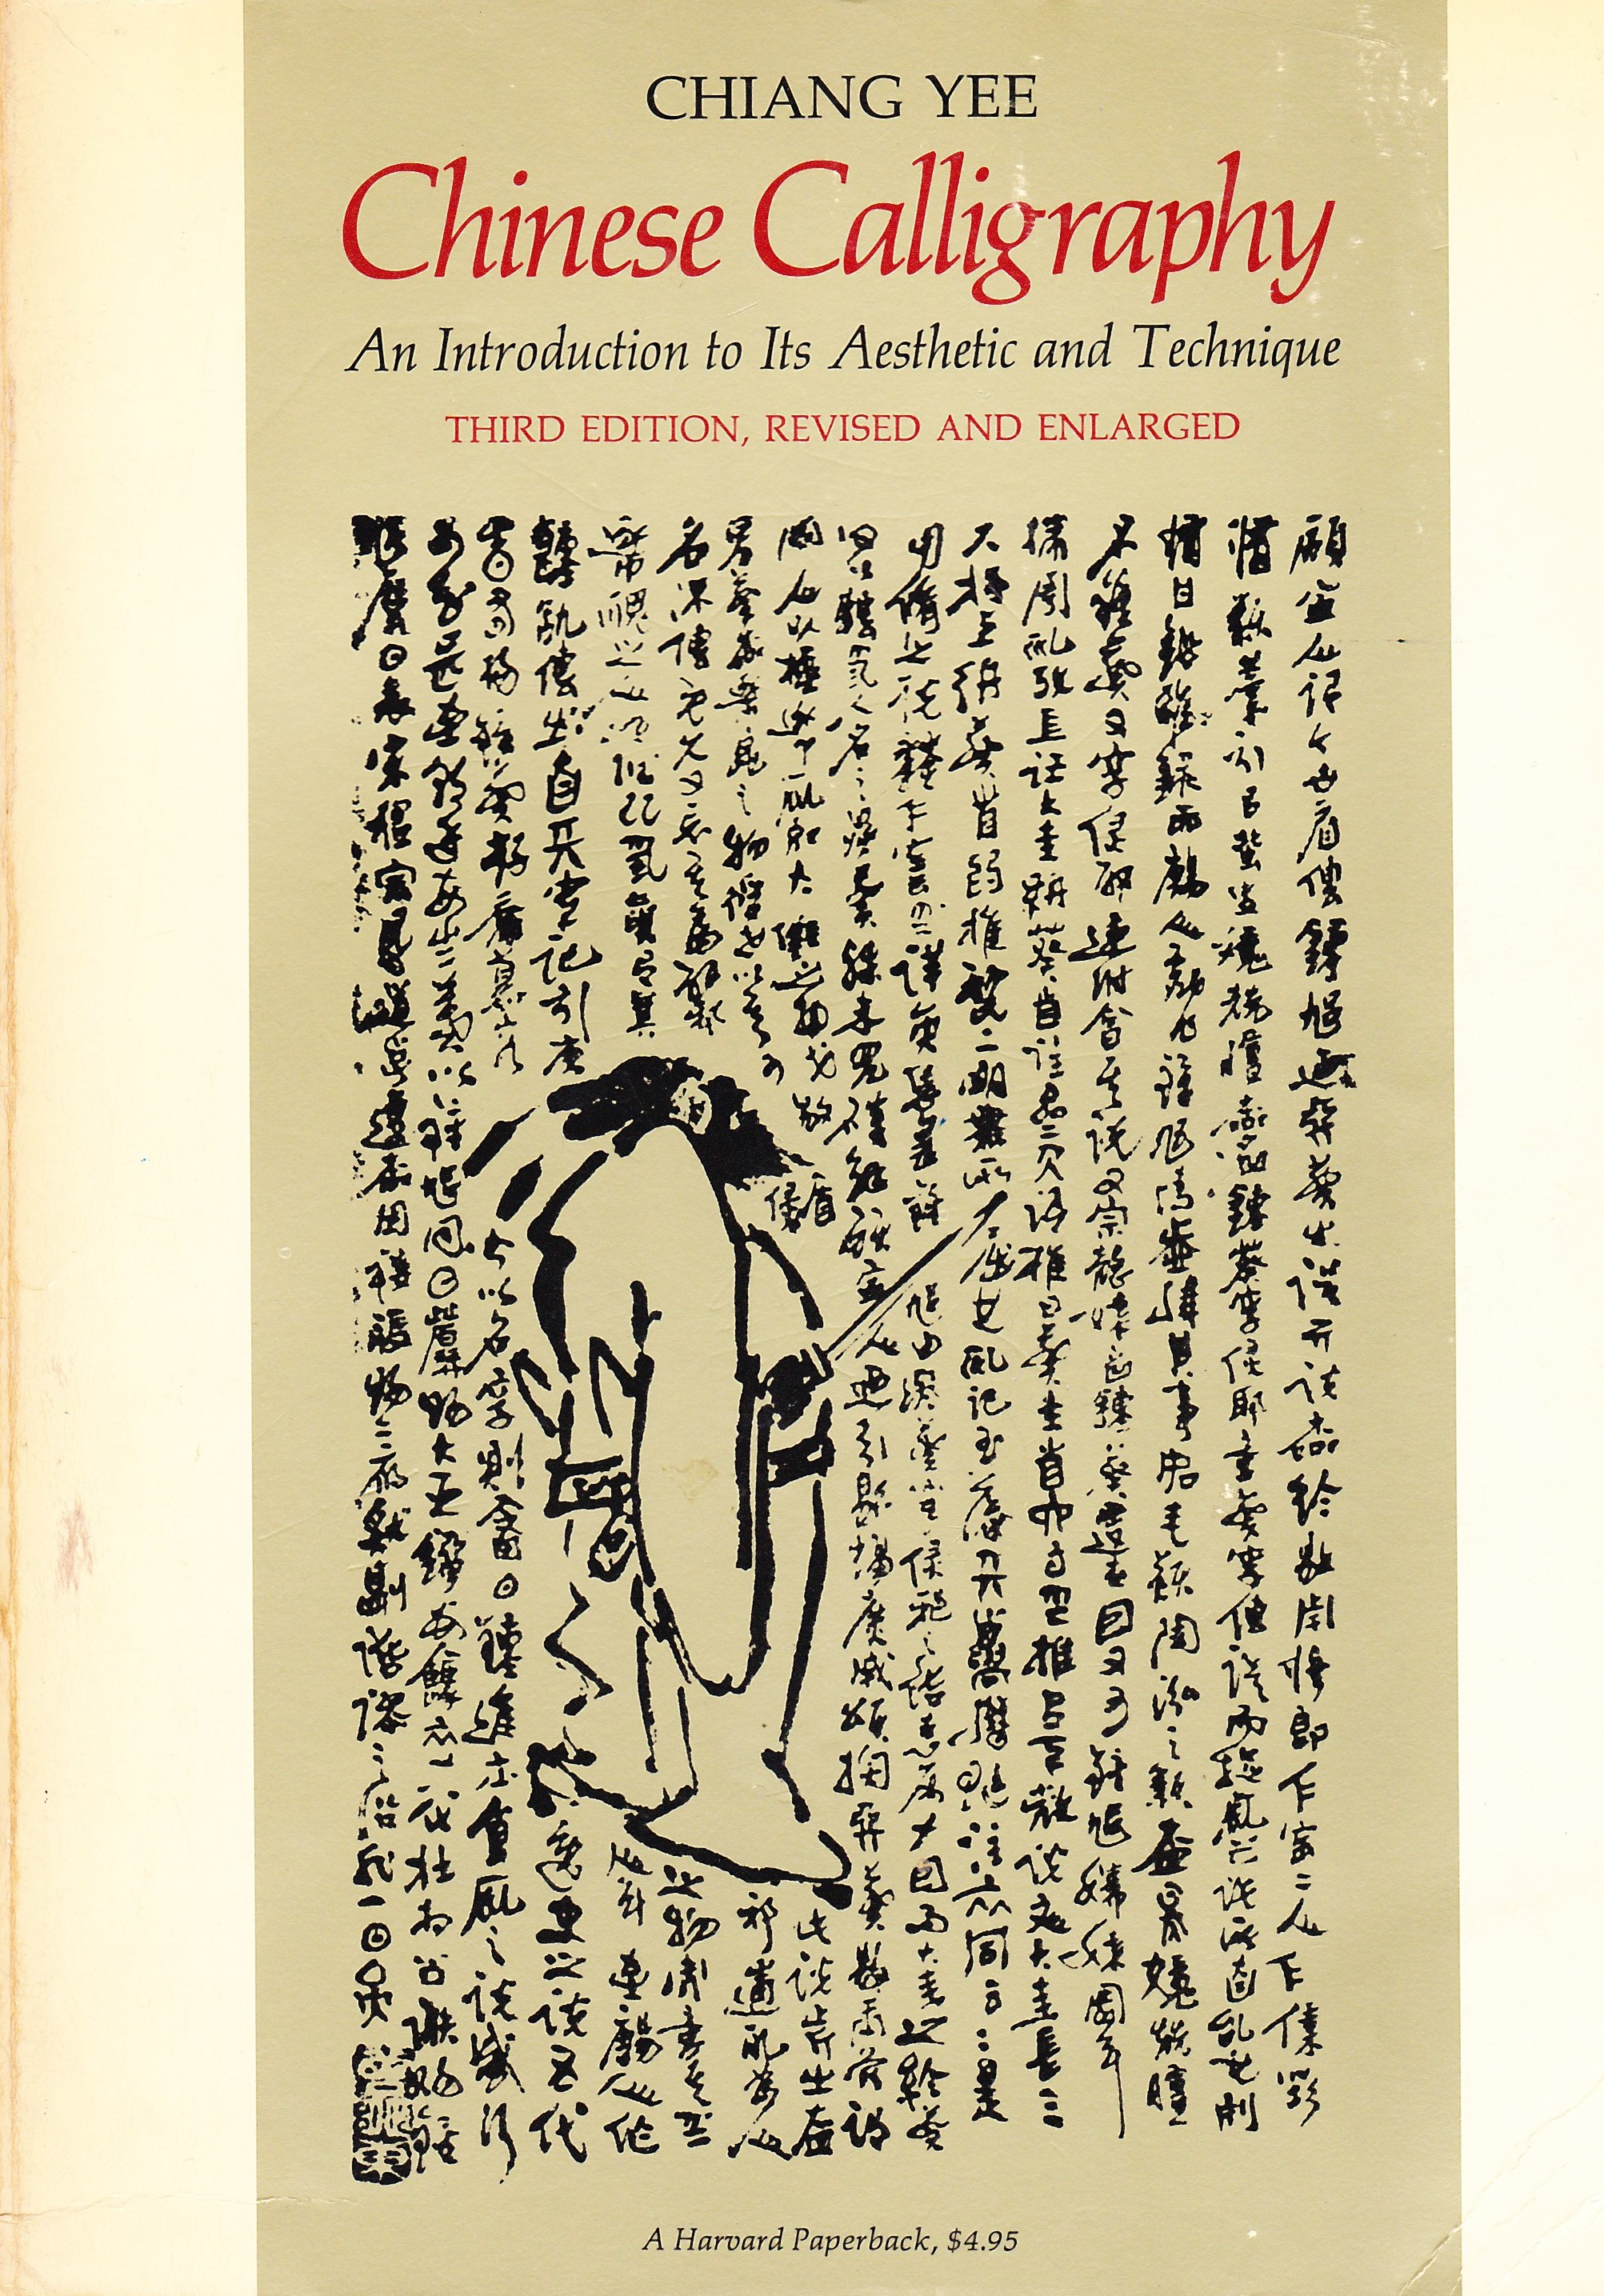 Chinese Calligraphy Book Covers